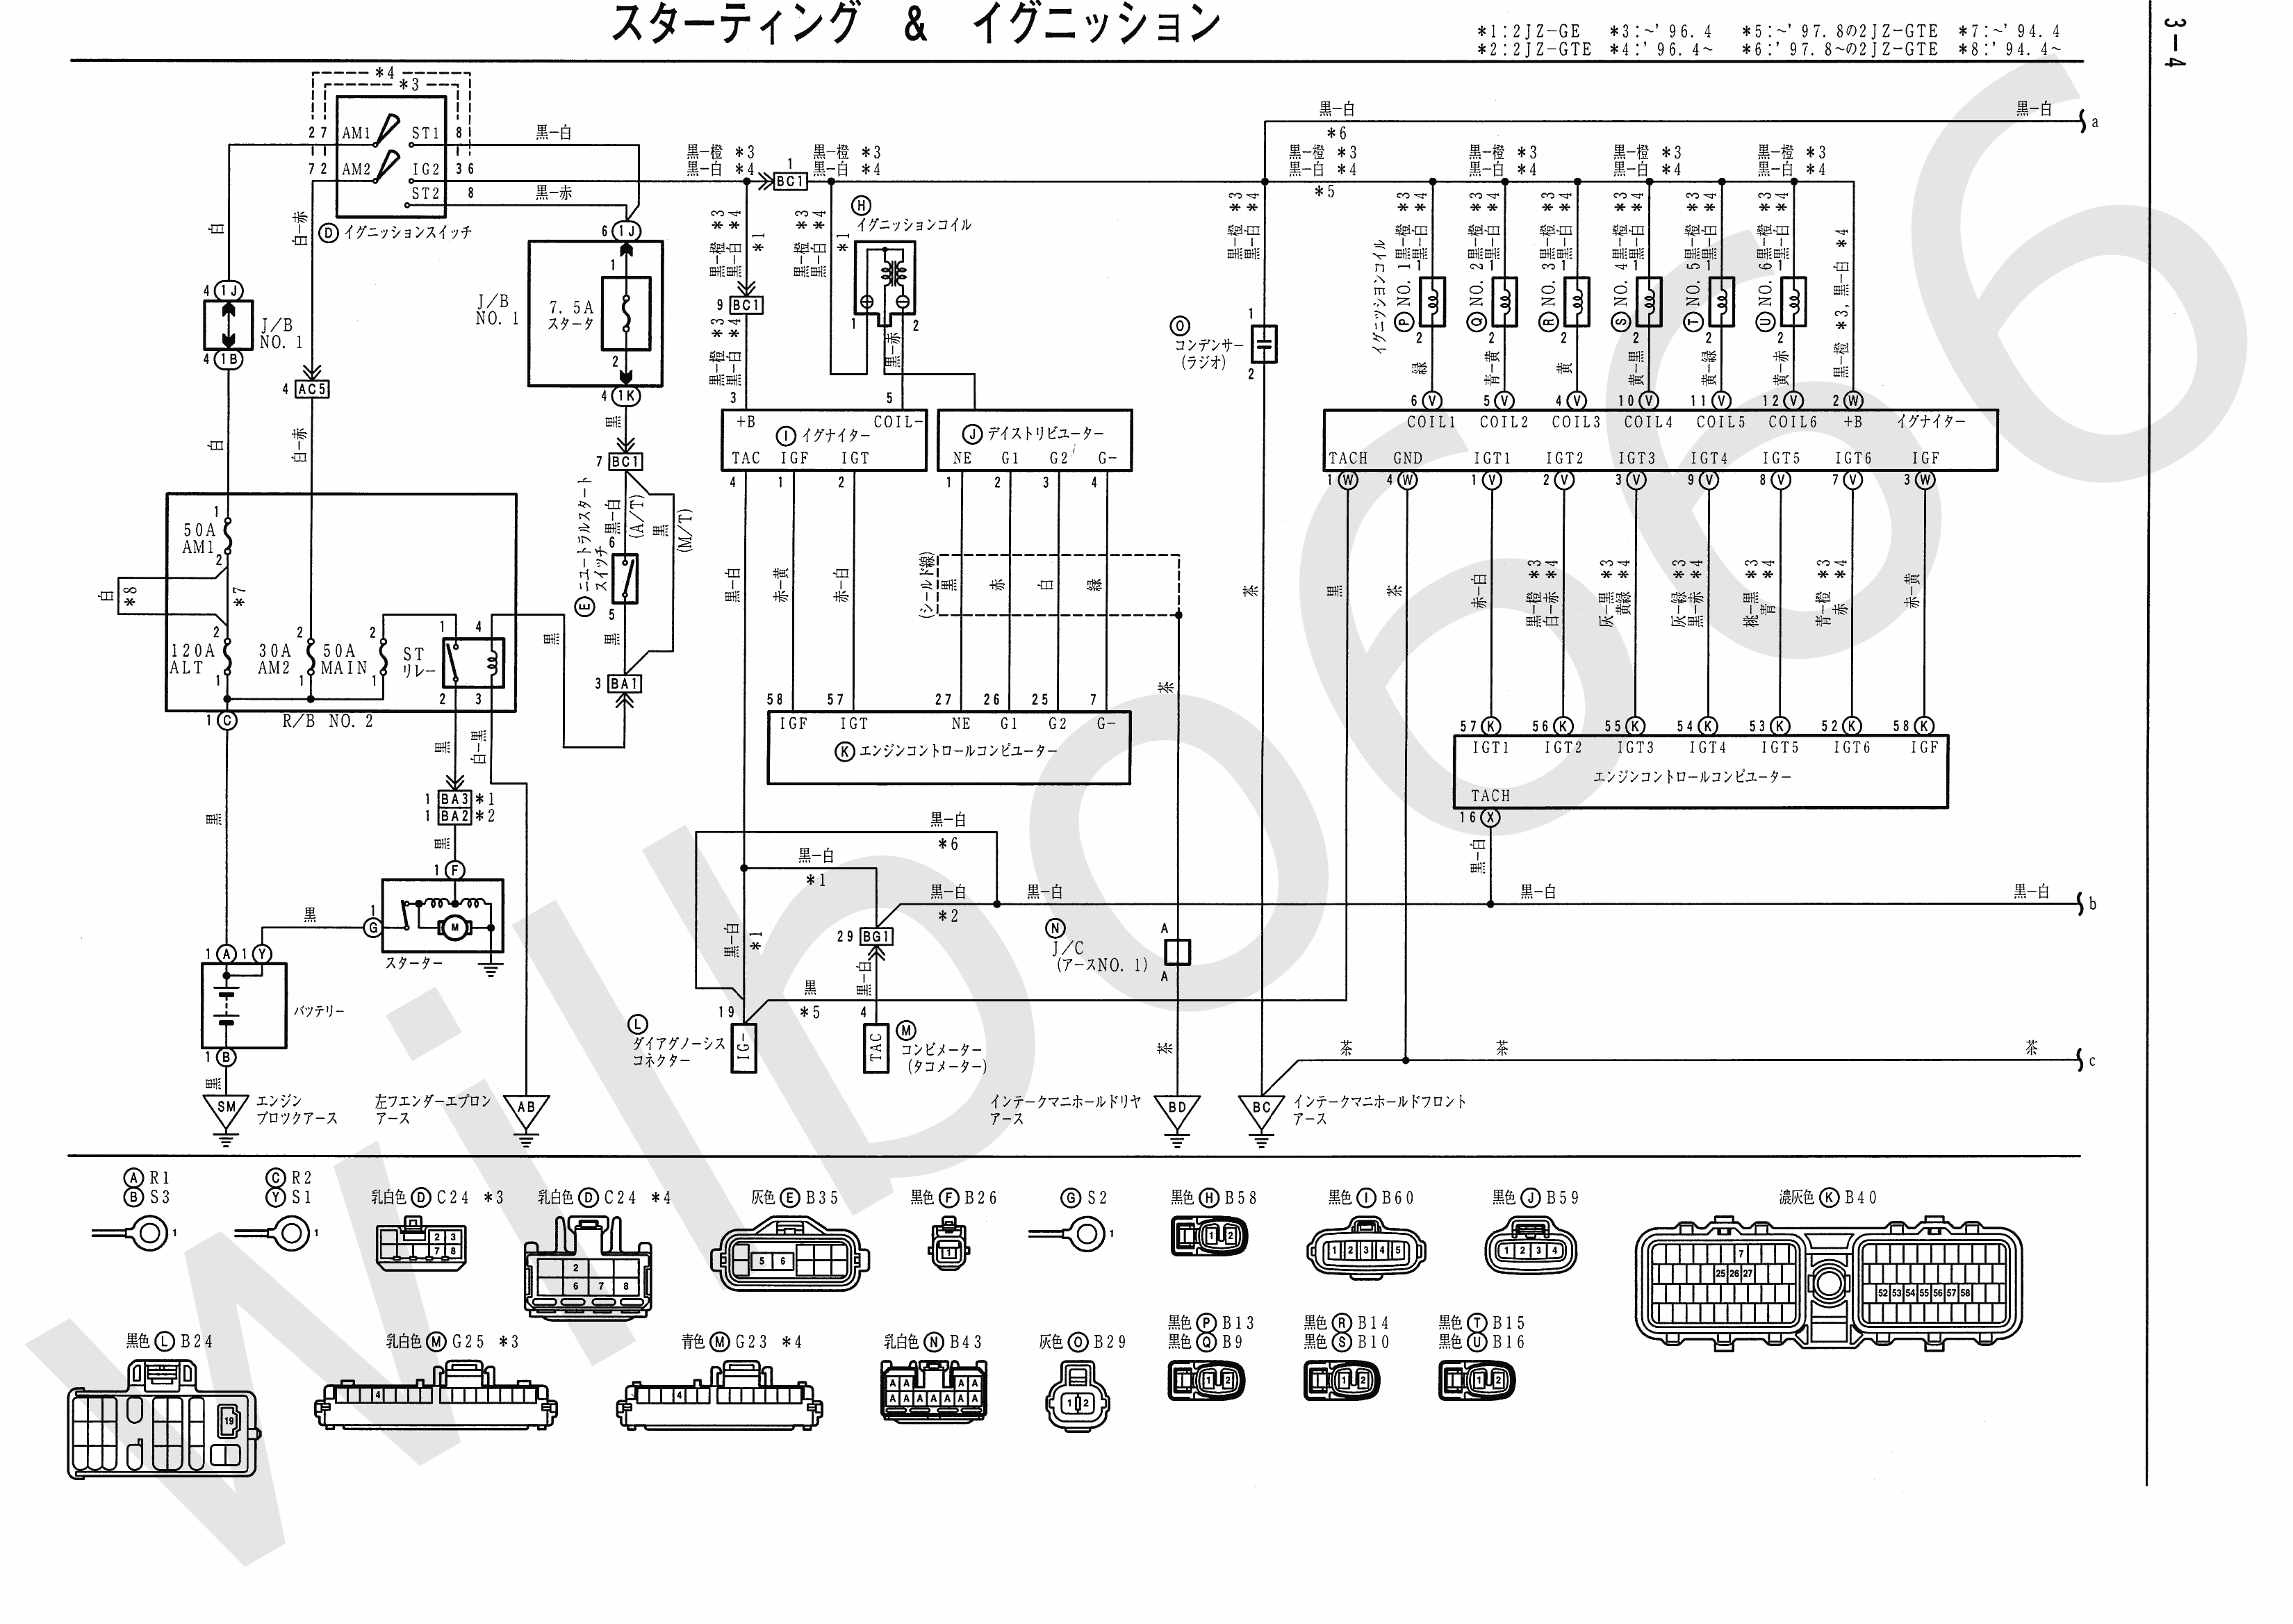 1989 Toyota Camry Alternator Wiring Data Schema 2011 Diagram Wilbo666 2jz Ge Jza80 Supra Engine Problem For 2007